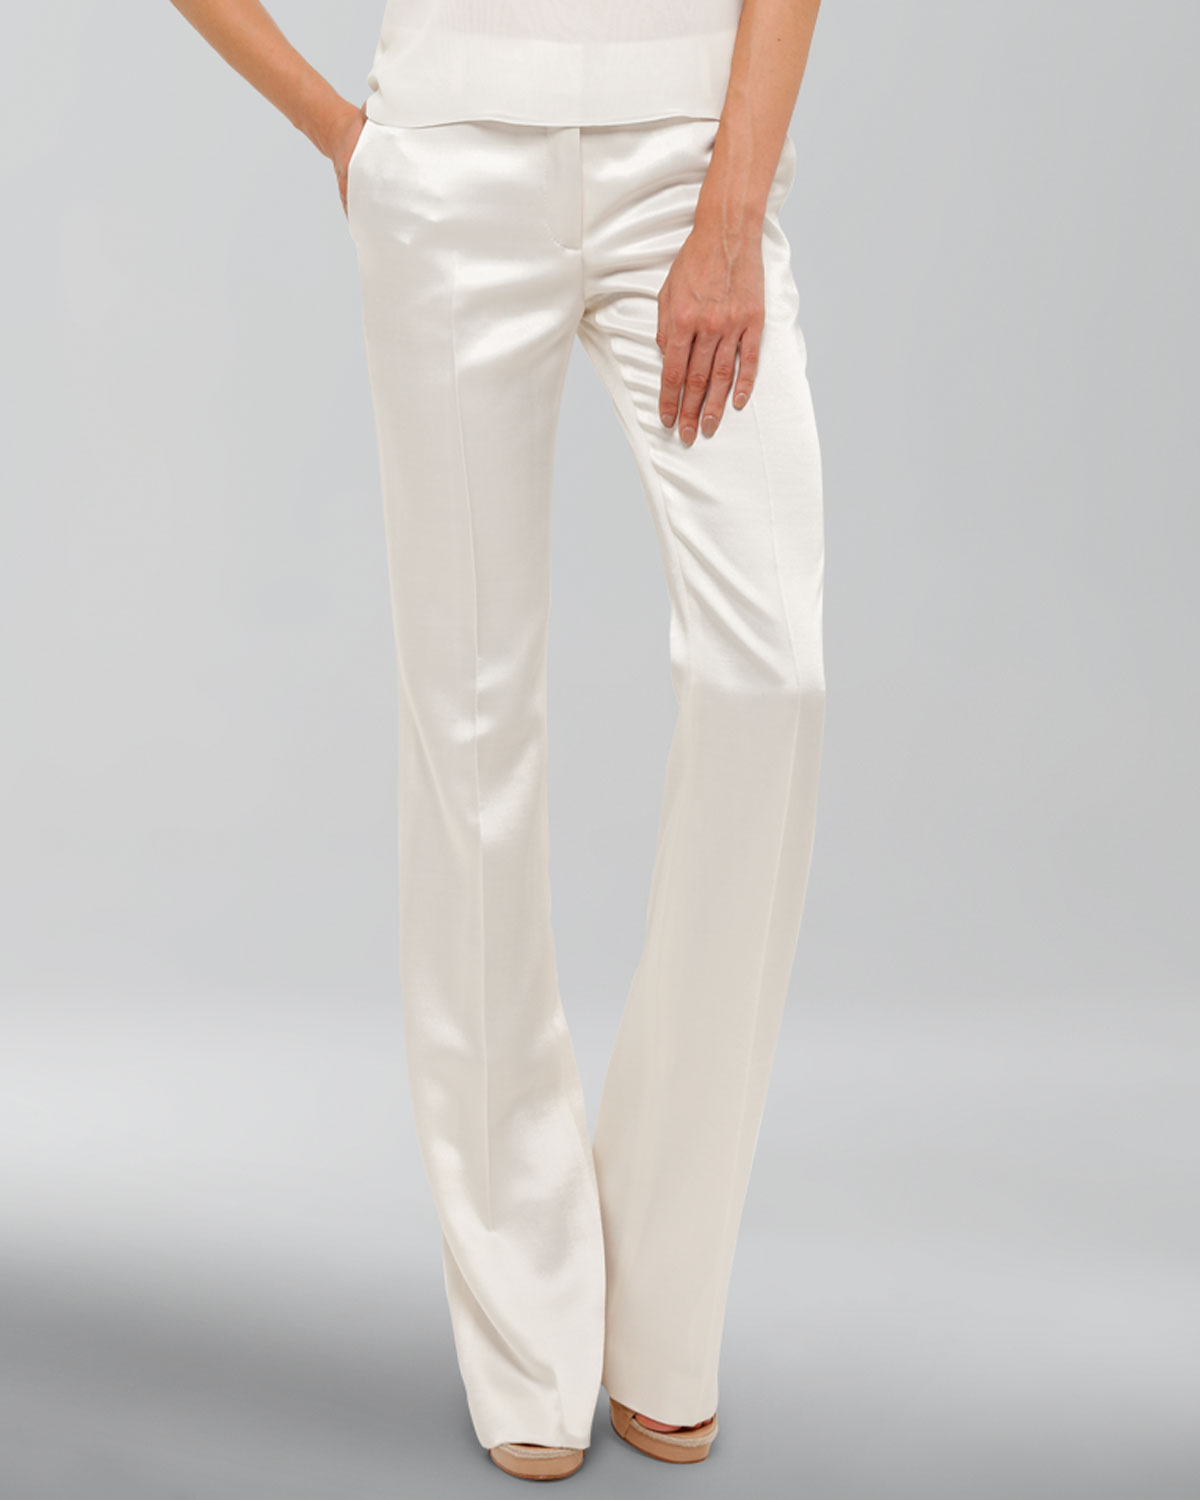 Lastest Trousers Casual Pants Plus Size Pants Endtoend Pants White Slim